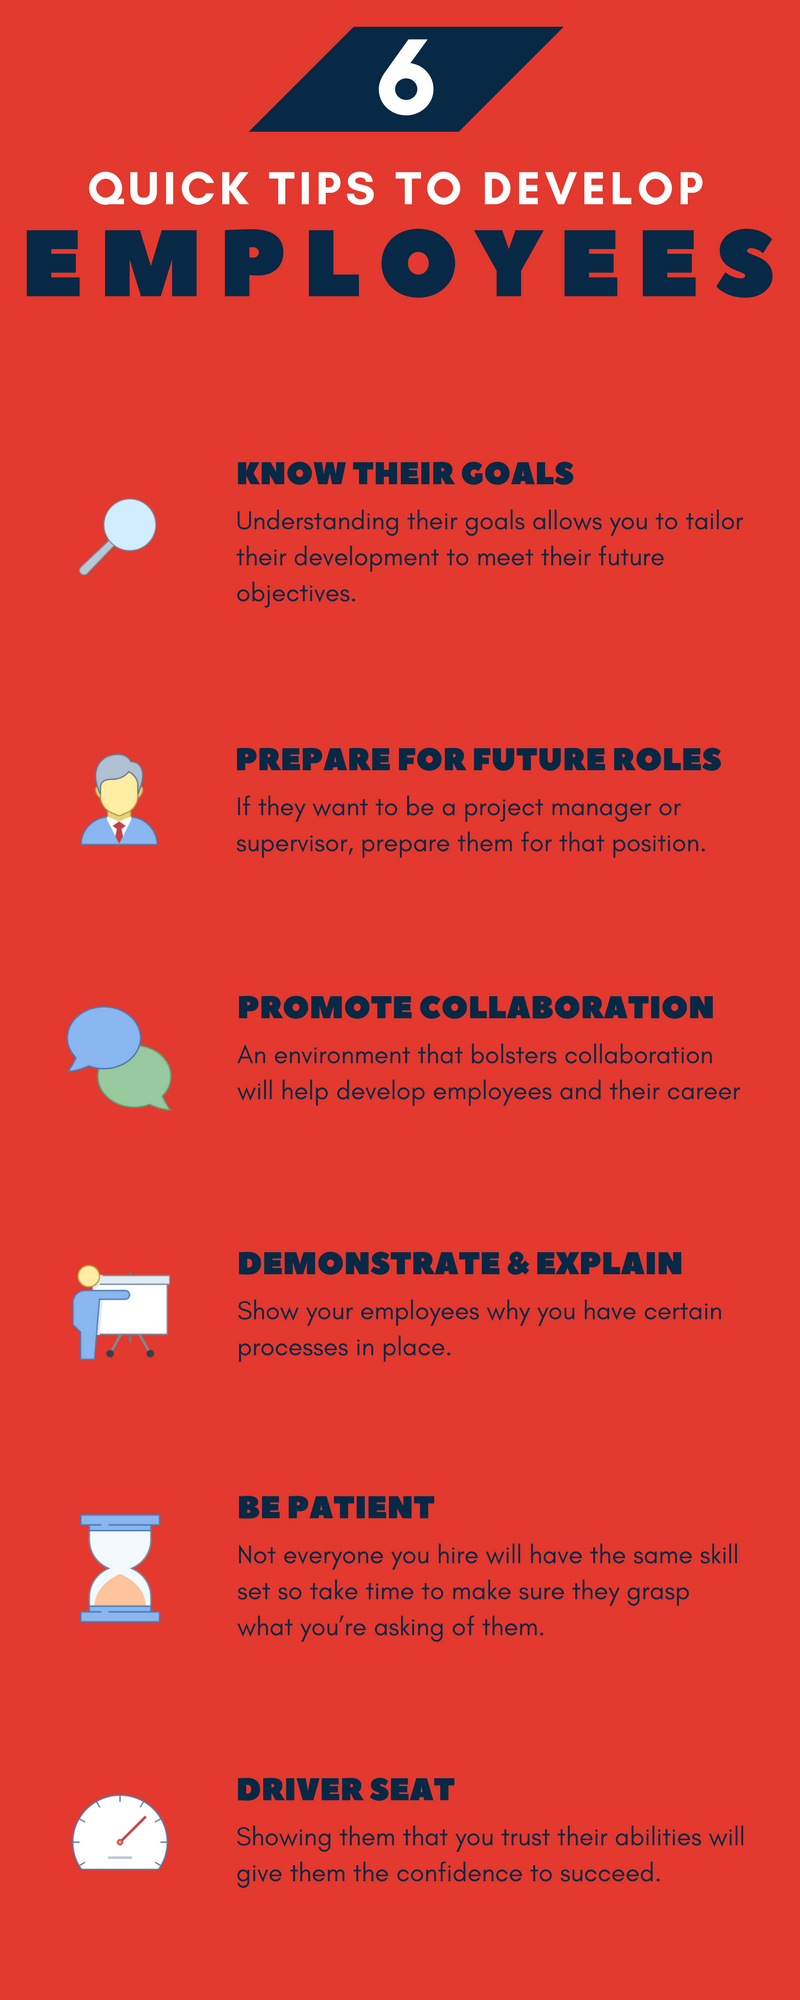 6 Quick Tips to Develop Employees.png